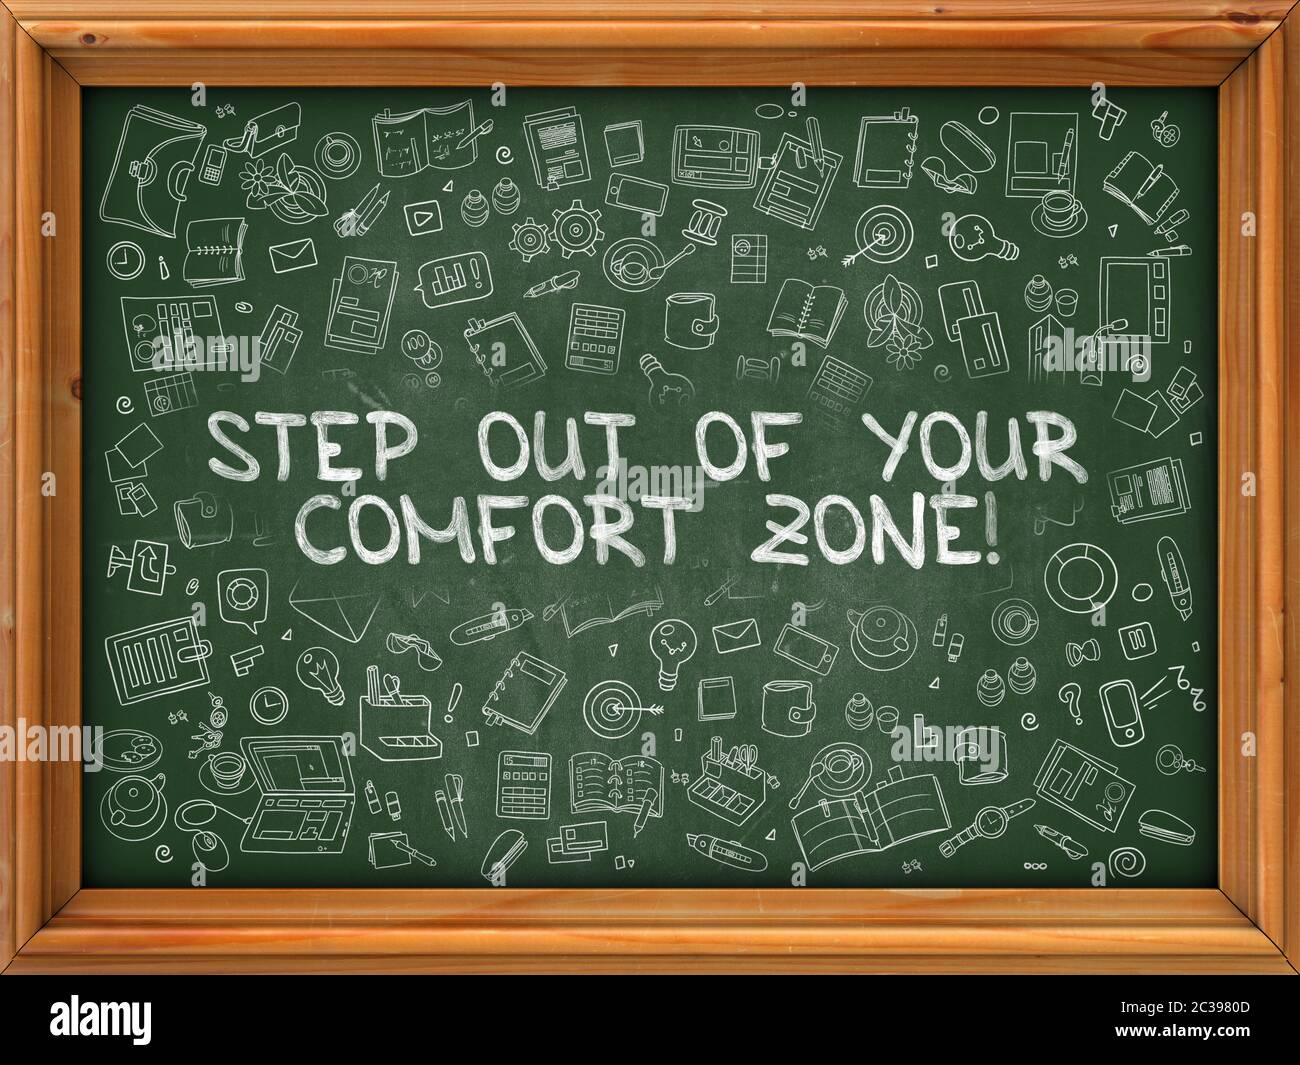 Step Out of Your Comfort Zone - Hand Drawn on Chalkboard. Step Out of Your Comfort Zone with Doodle Icons Around. Stock Photo